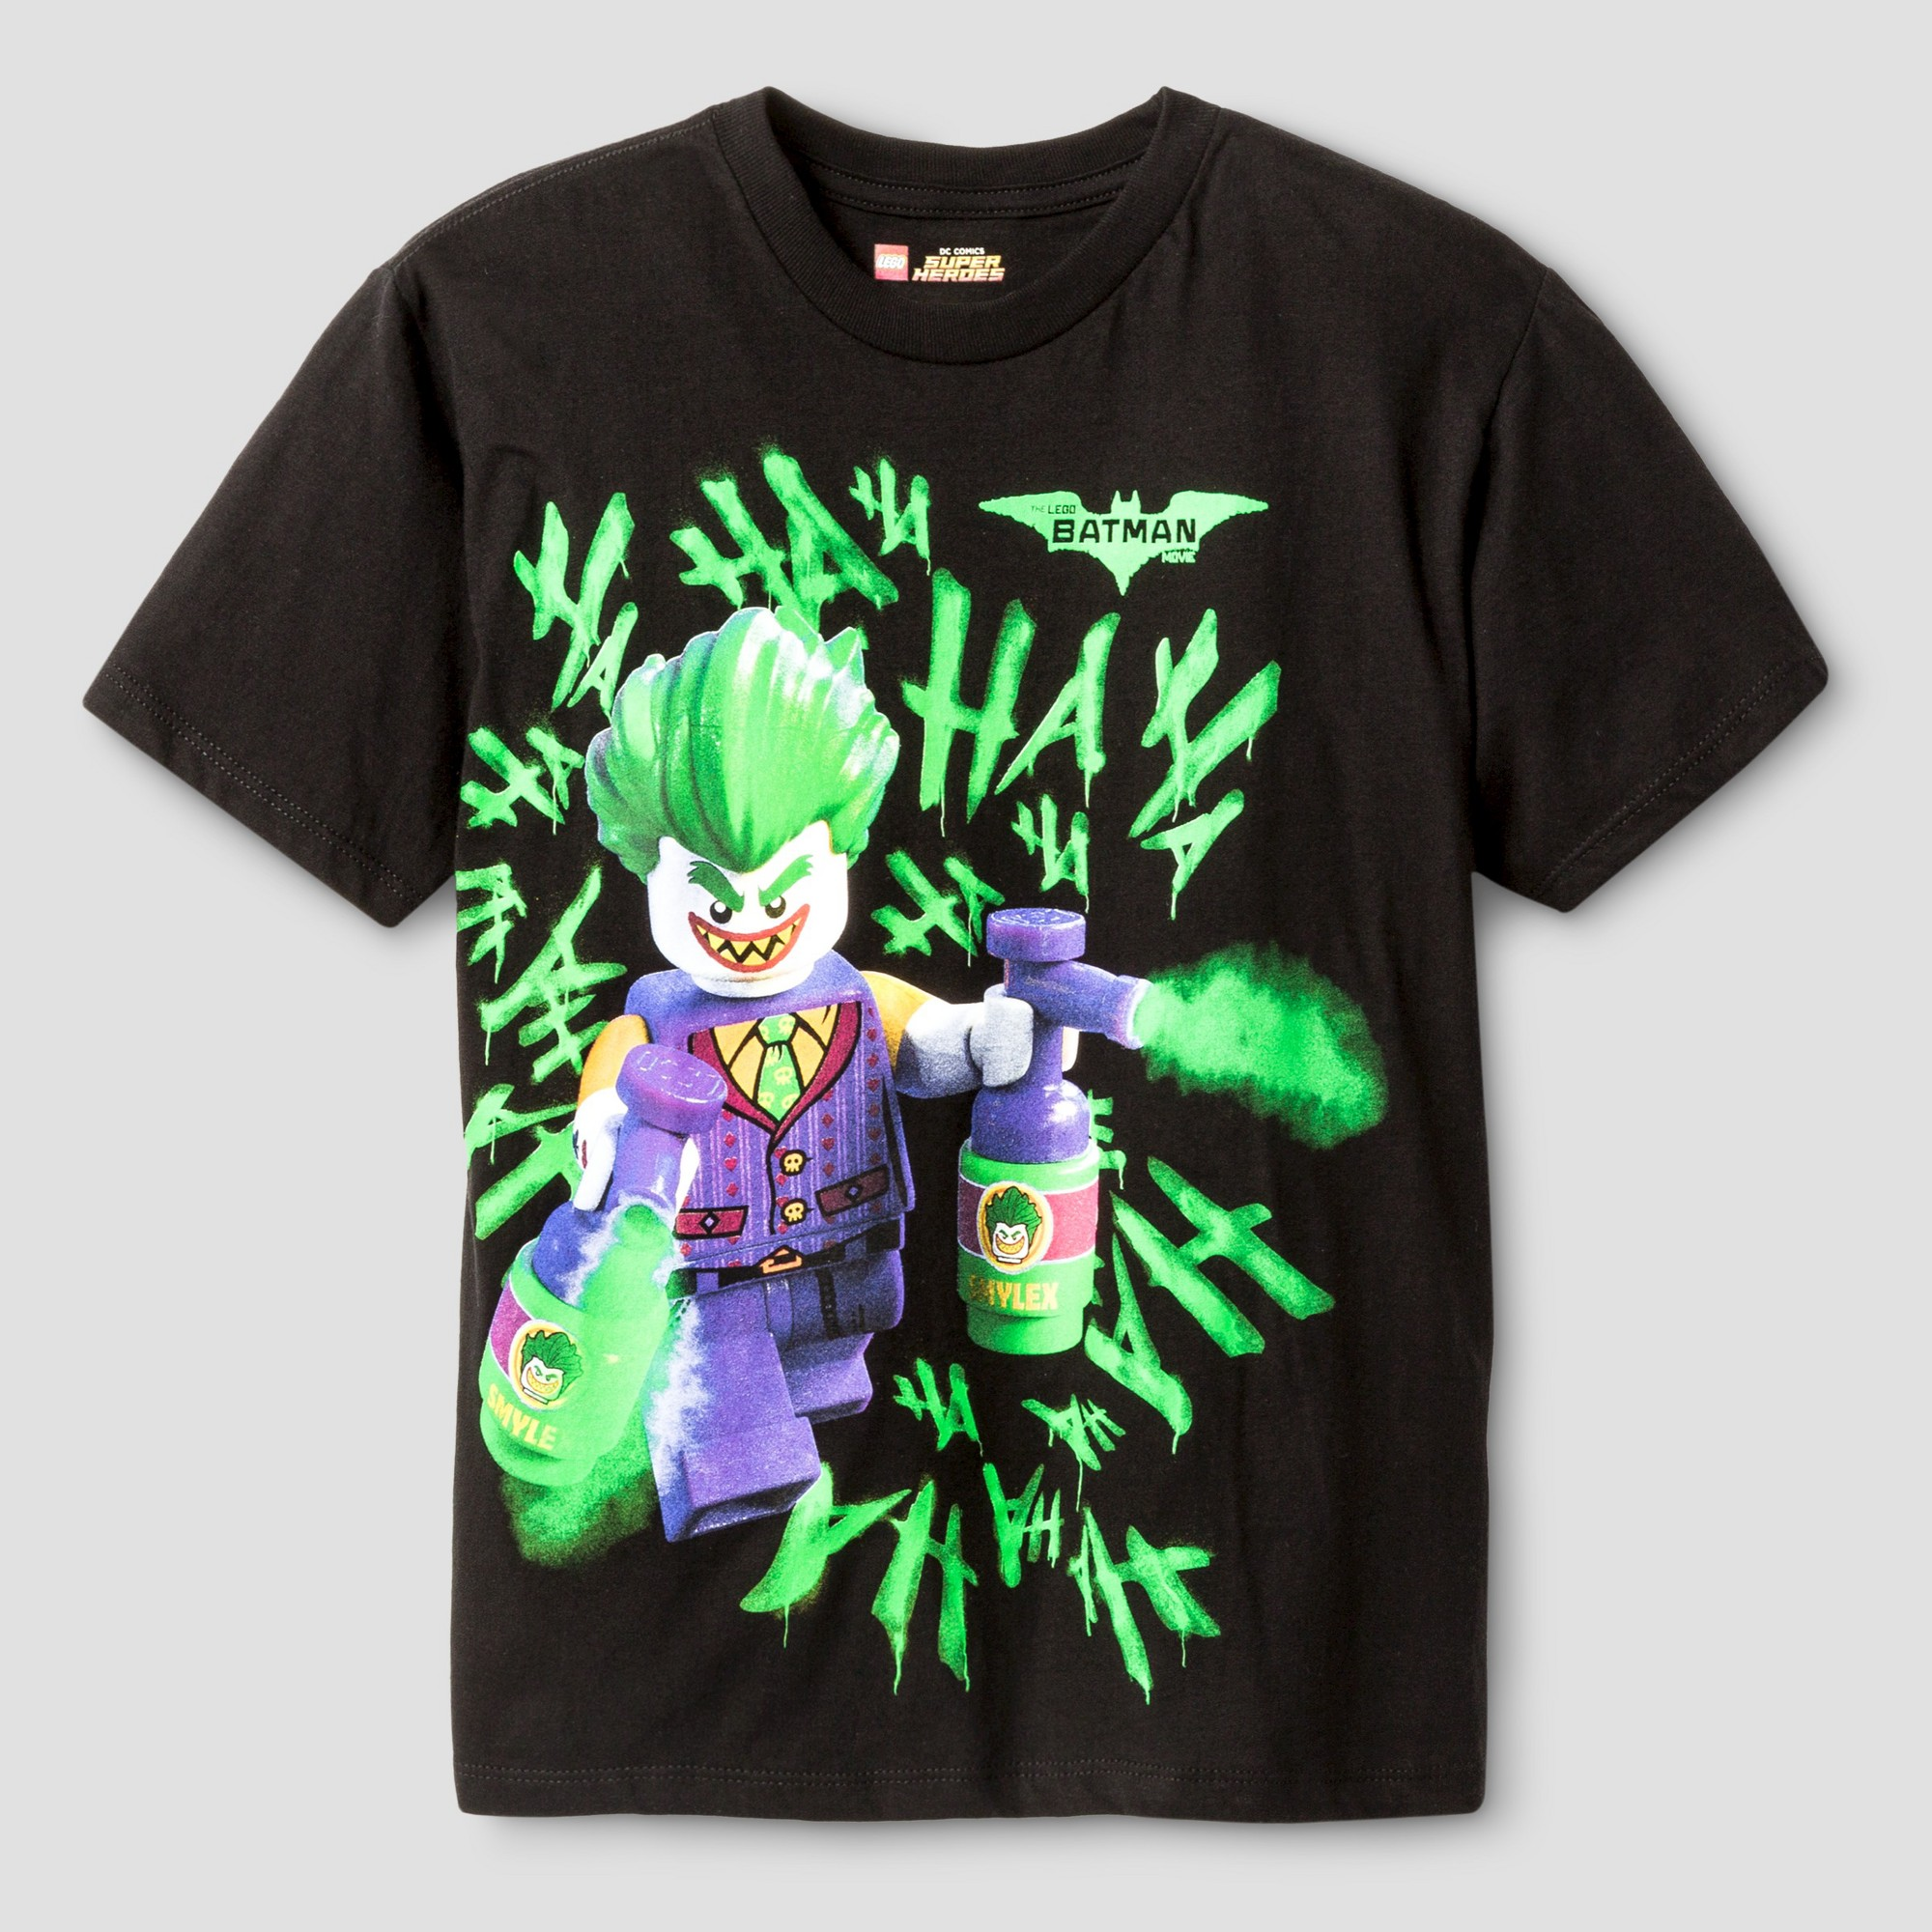 4882f24a2 Boys' The LEGO Batman Movie Joker Graphic T-Shirt - Black XL ...